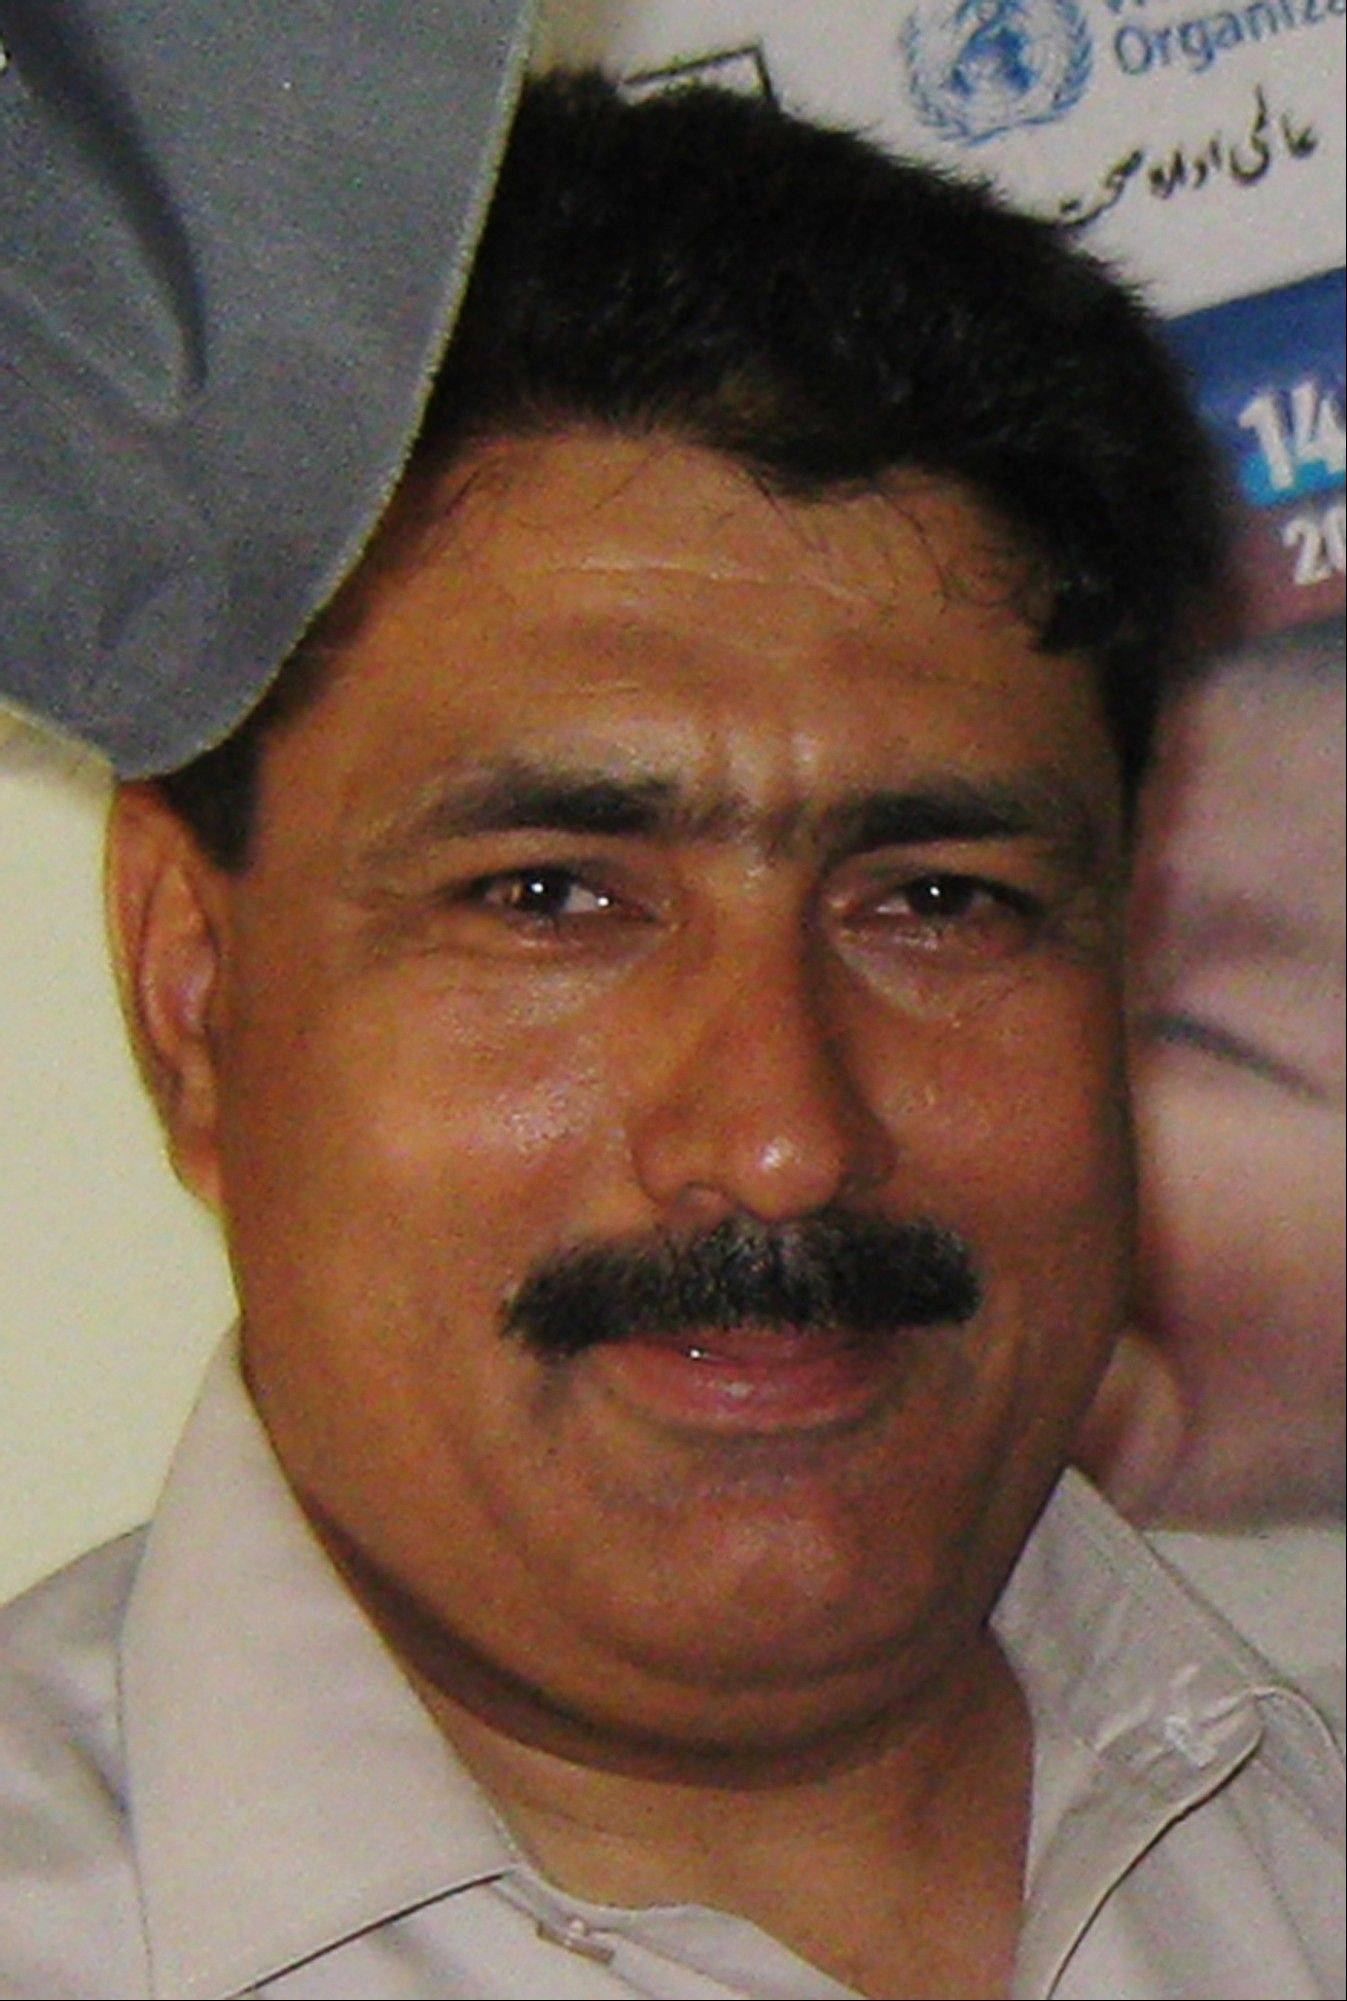 Pakistani doctor Shakil Afridi in Pakistan�s tribal area of Jamrud in Khyber region.